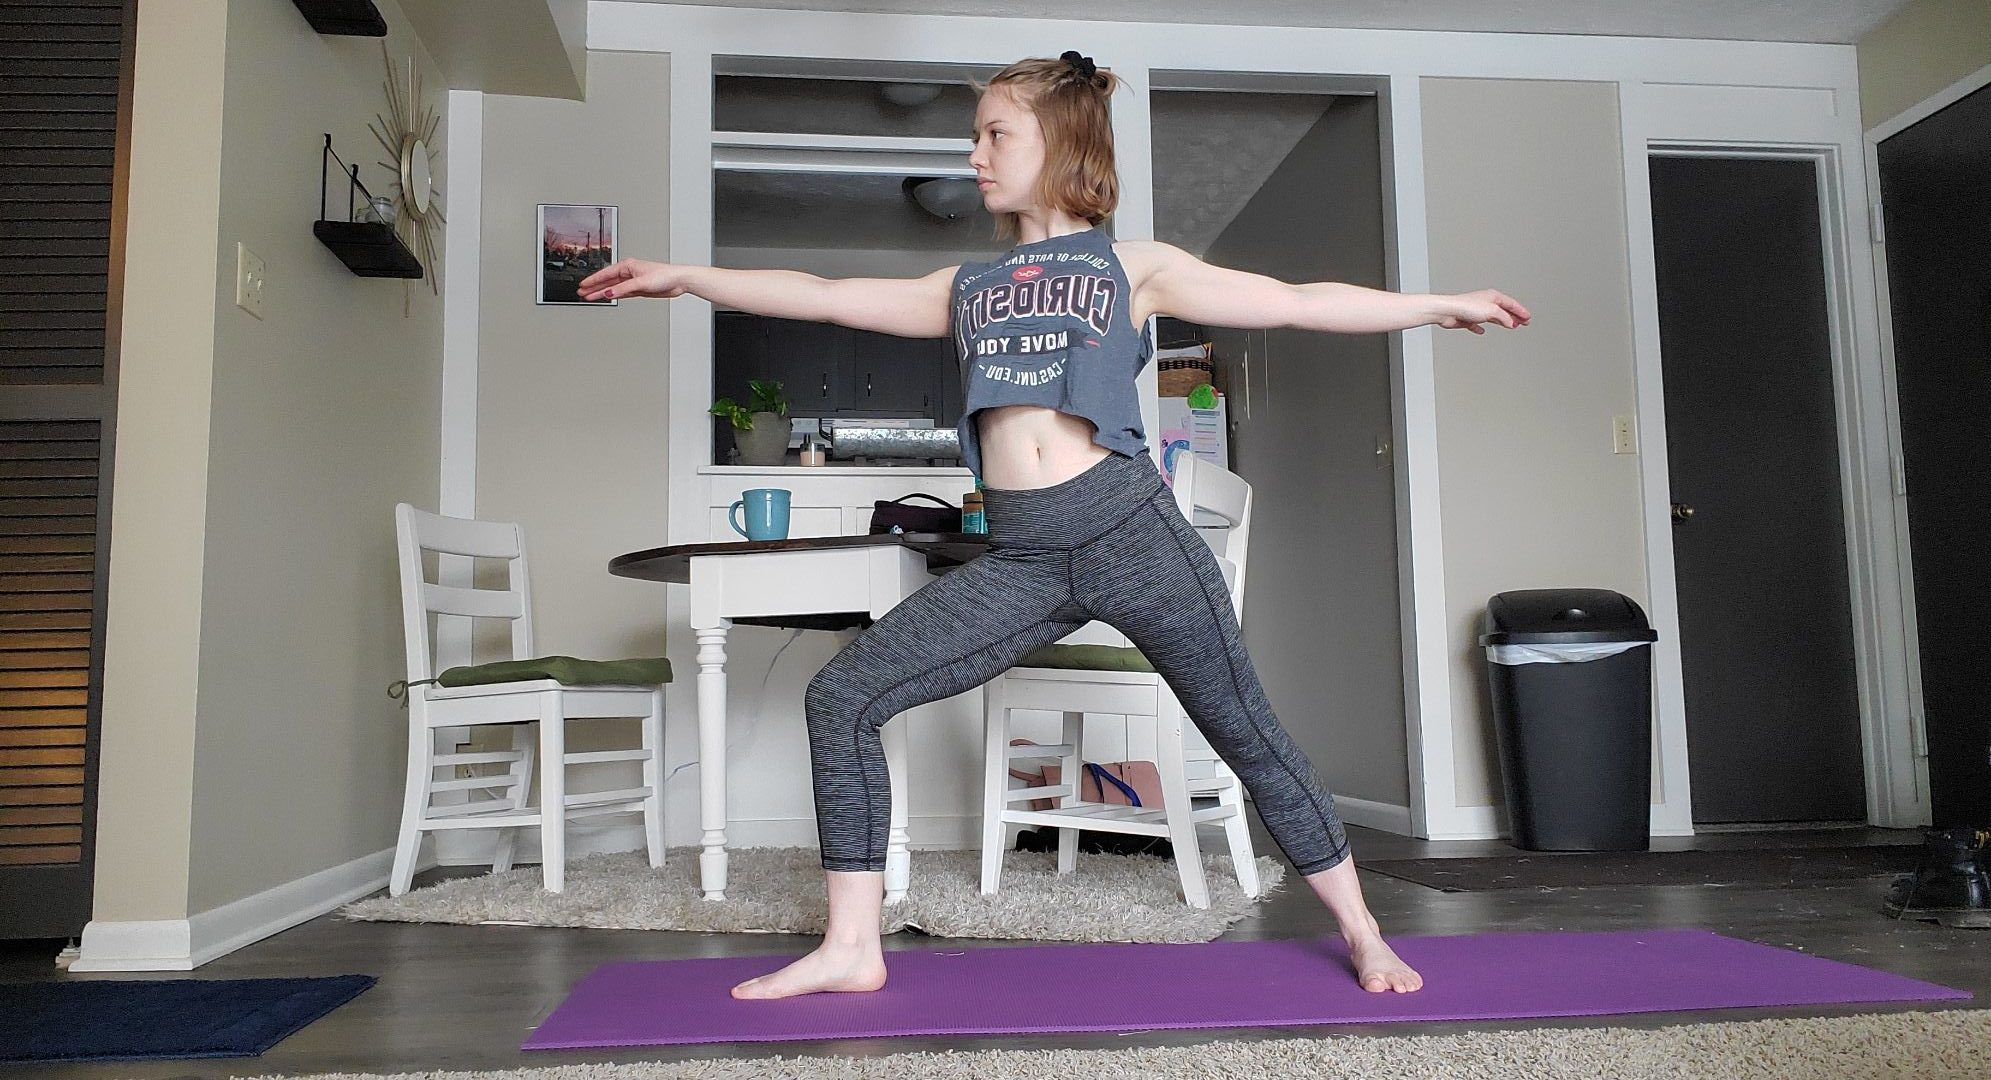 Woman staring forward doing yoga pose on purple yoga mat in her living room